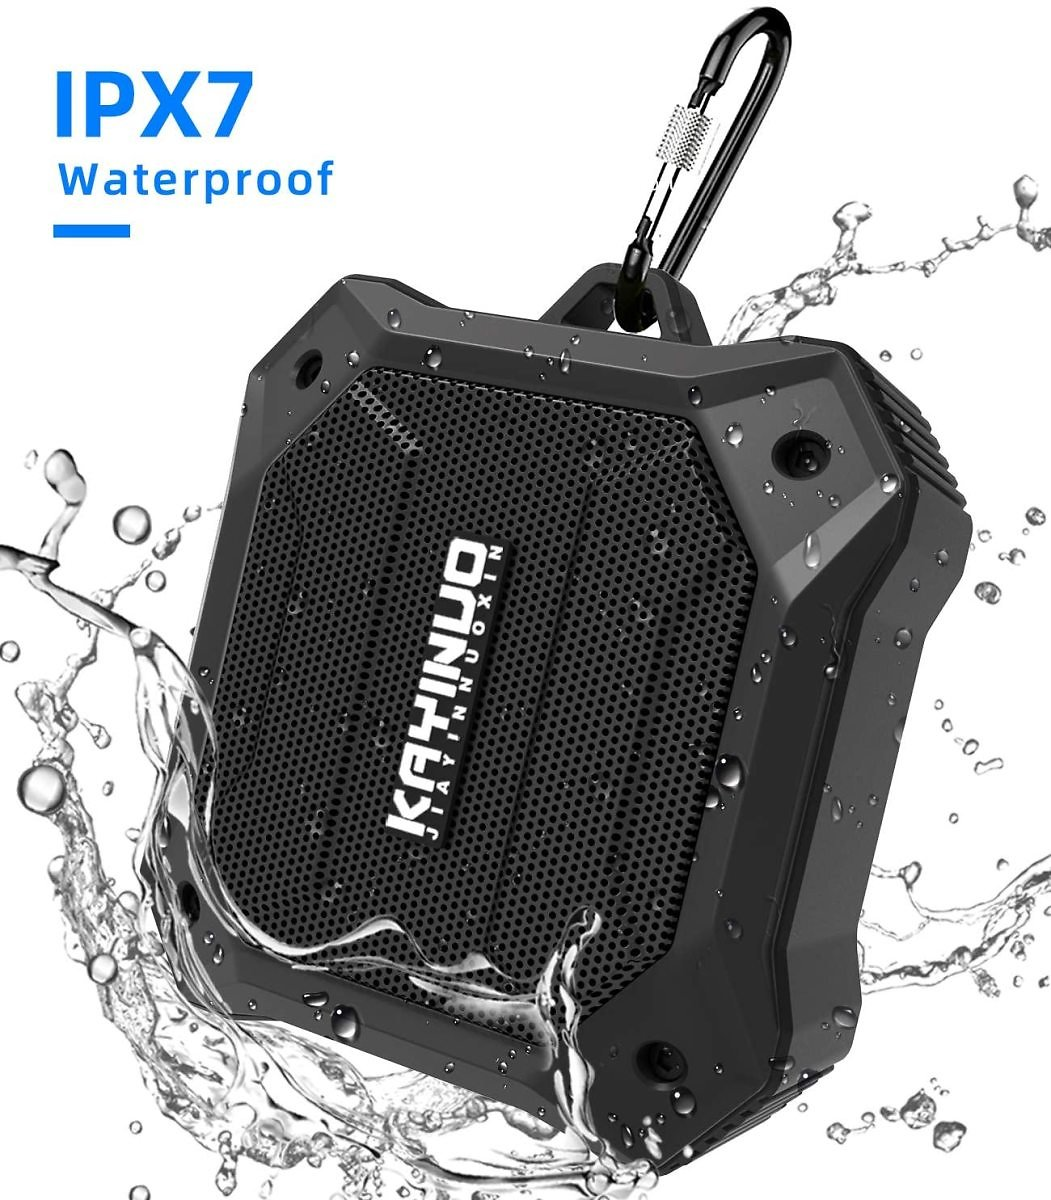 Shower Speaker - Kayinuo IPX7 Waterproof Bluetooth Speaker, Portable Bluetooth Speaker with Enhanced Bass and Built-in Mic, Mini